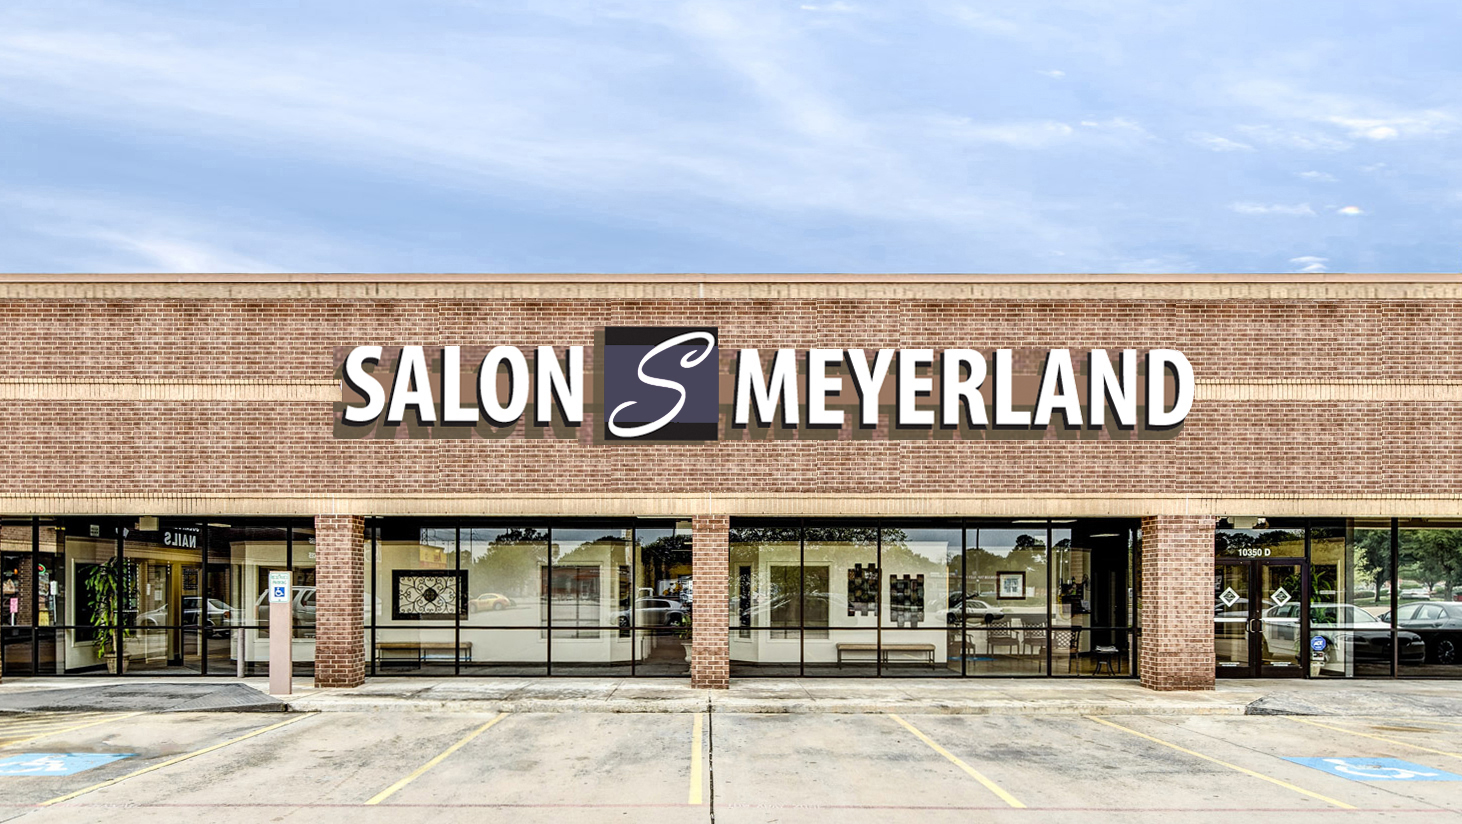 Salon Meyerland - #1 Relaxed and Natural Black Hair Care in Houston image 1